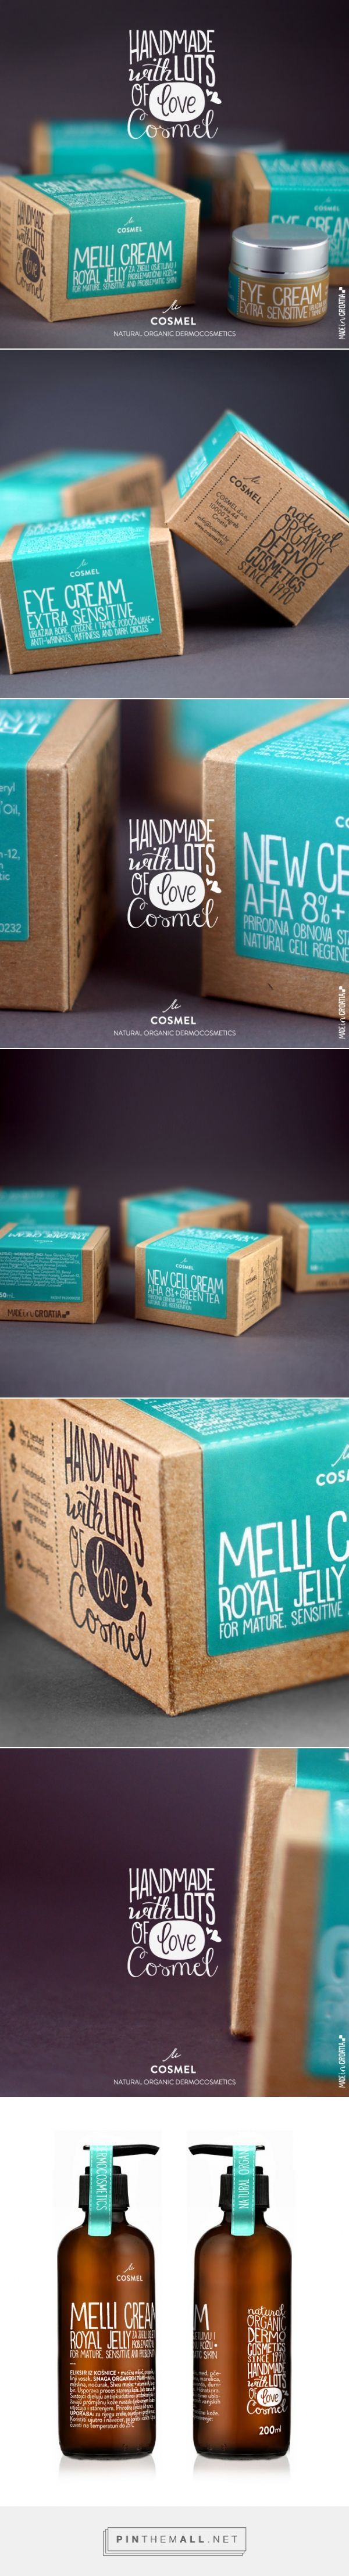 Soap/beauty packaging